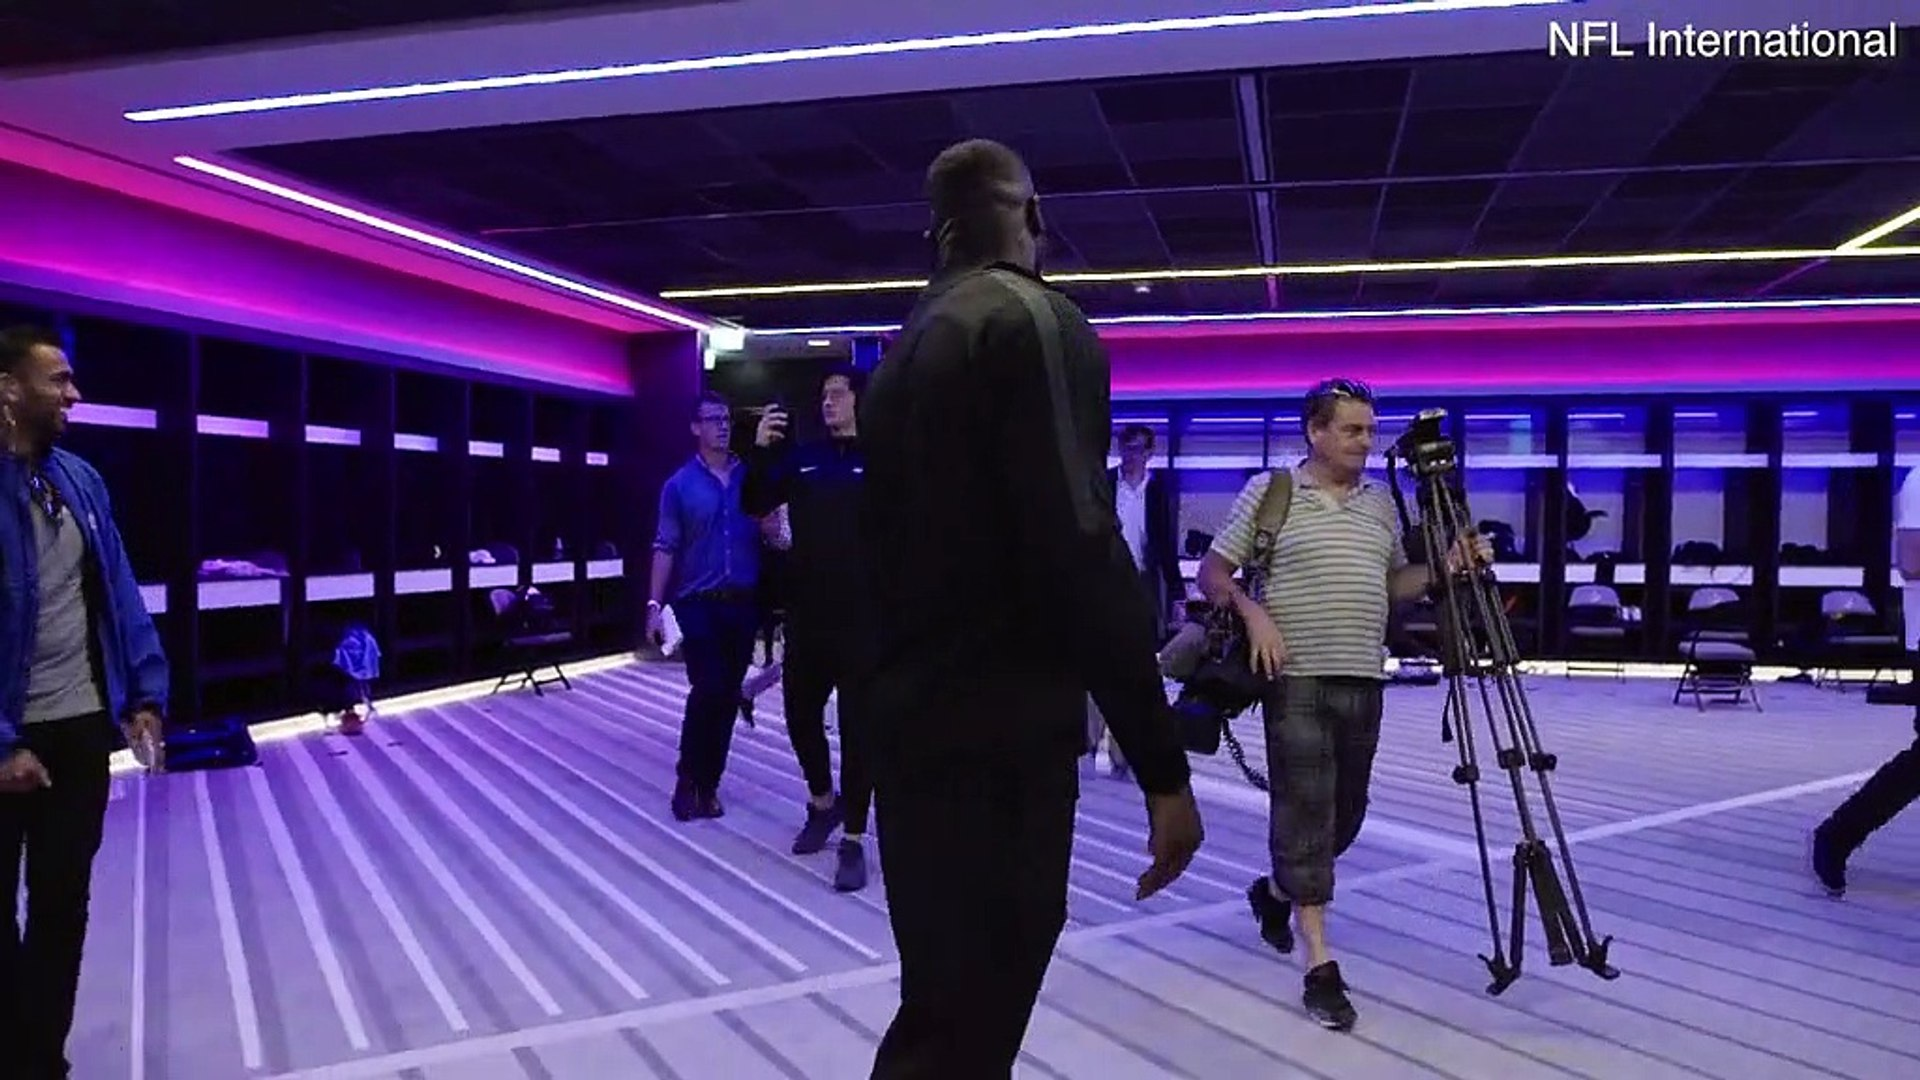 Tottenham Hotspur Changing Room Transformed For Nfl London Video Dailymotion